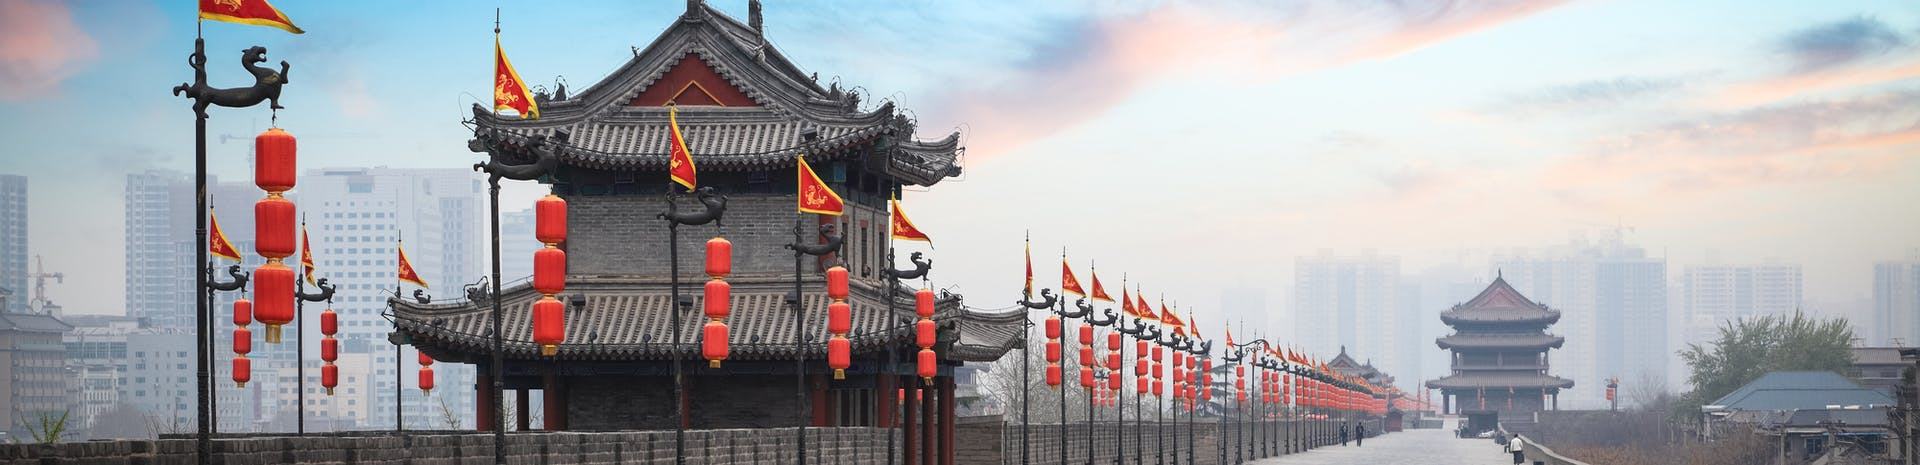 Picture of Xi'an